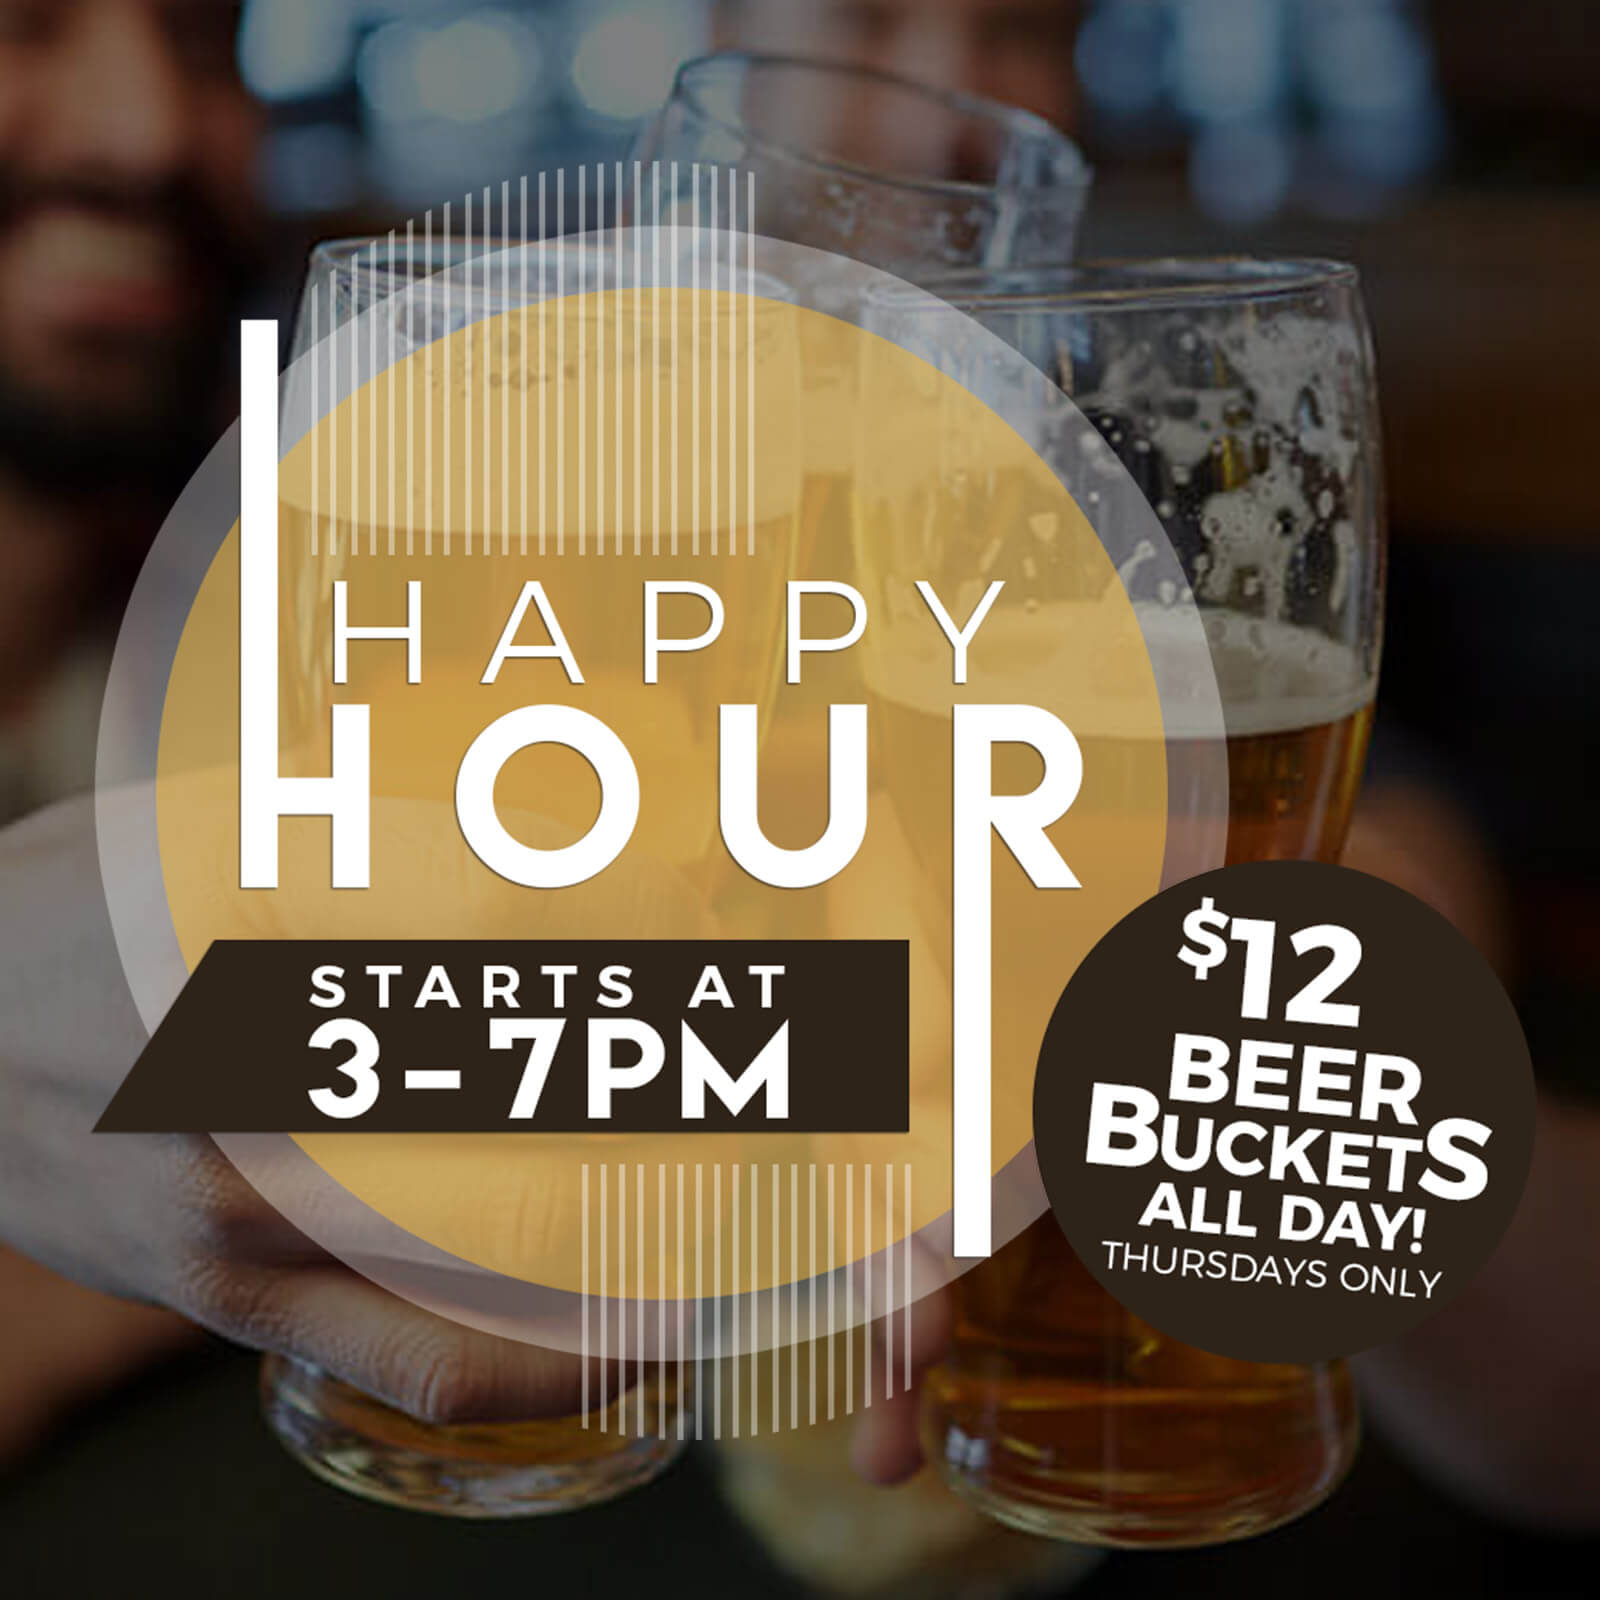 happy-hour-event-page-image